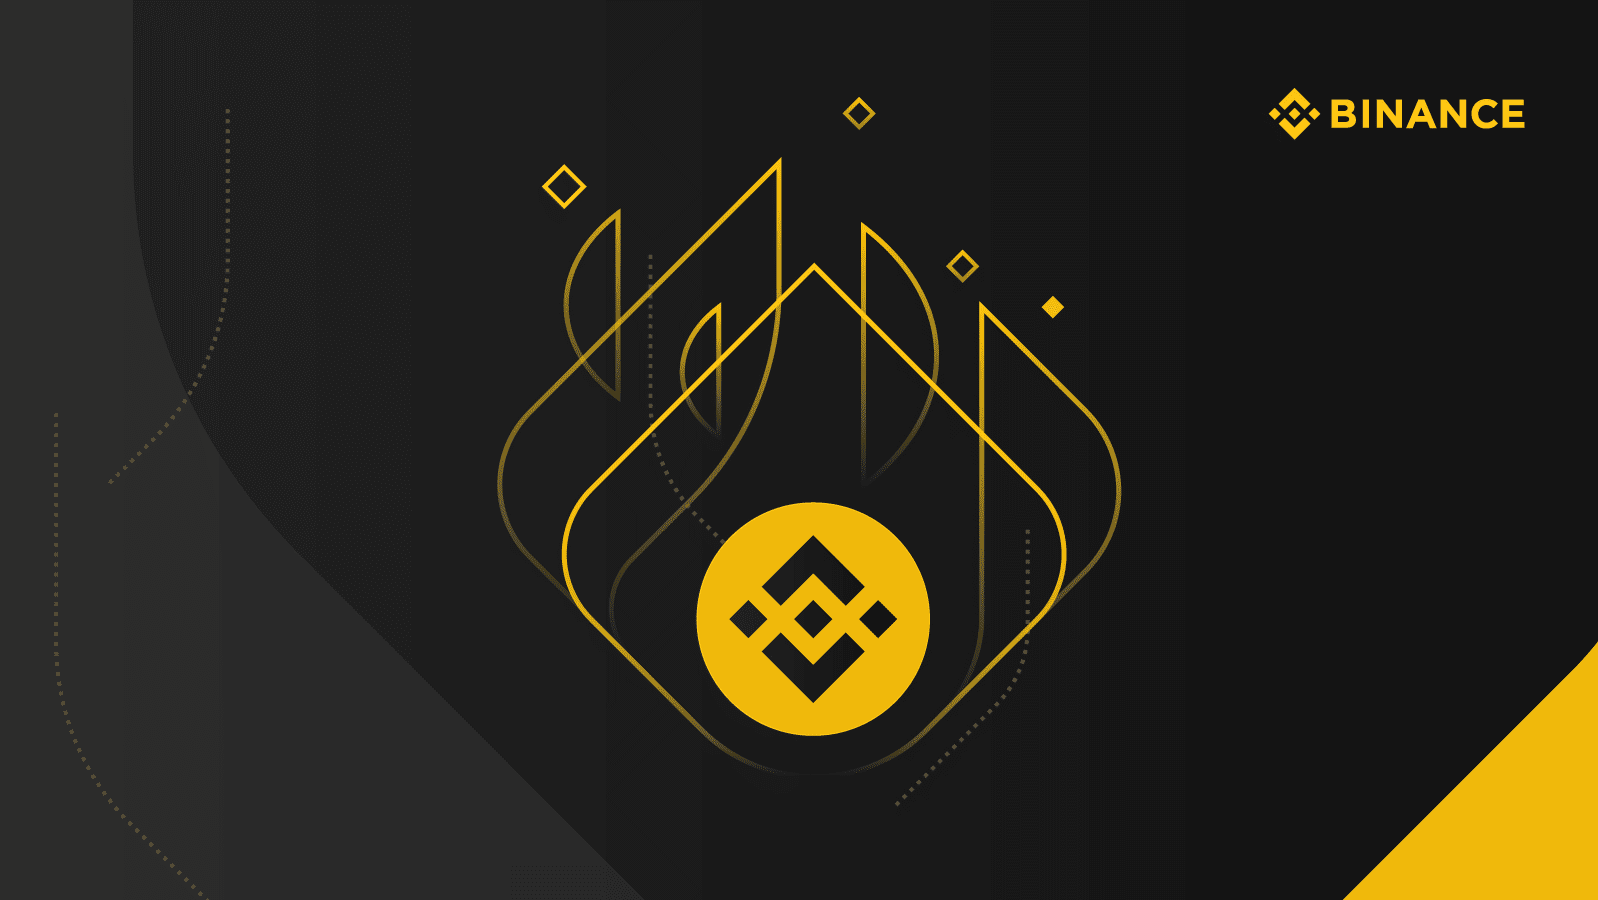 binance coin)